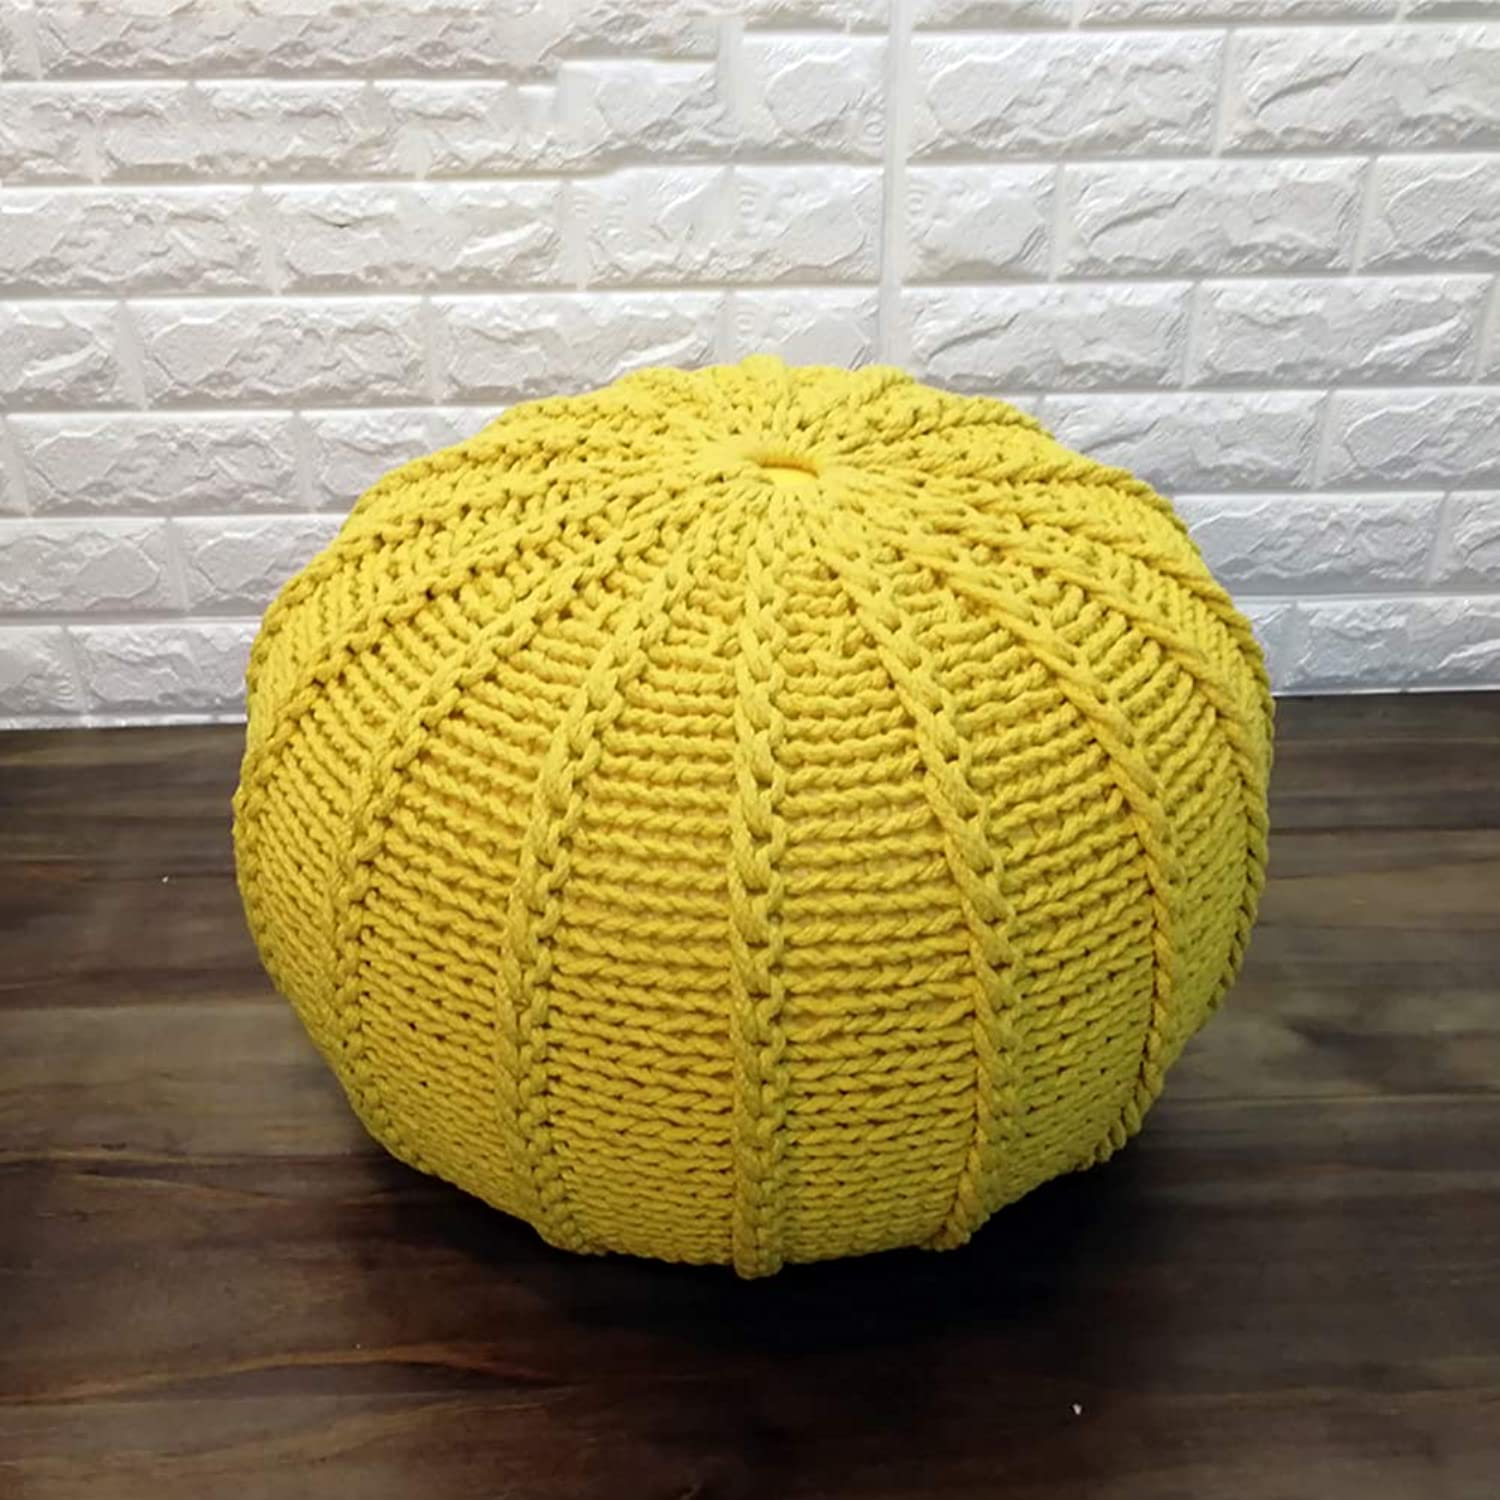 Knitted Large Round Pouffe Footstool Mgoldccan Chunky Braid Contemporary Living Room Cushion Seat (50Cm),Yellow